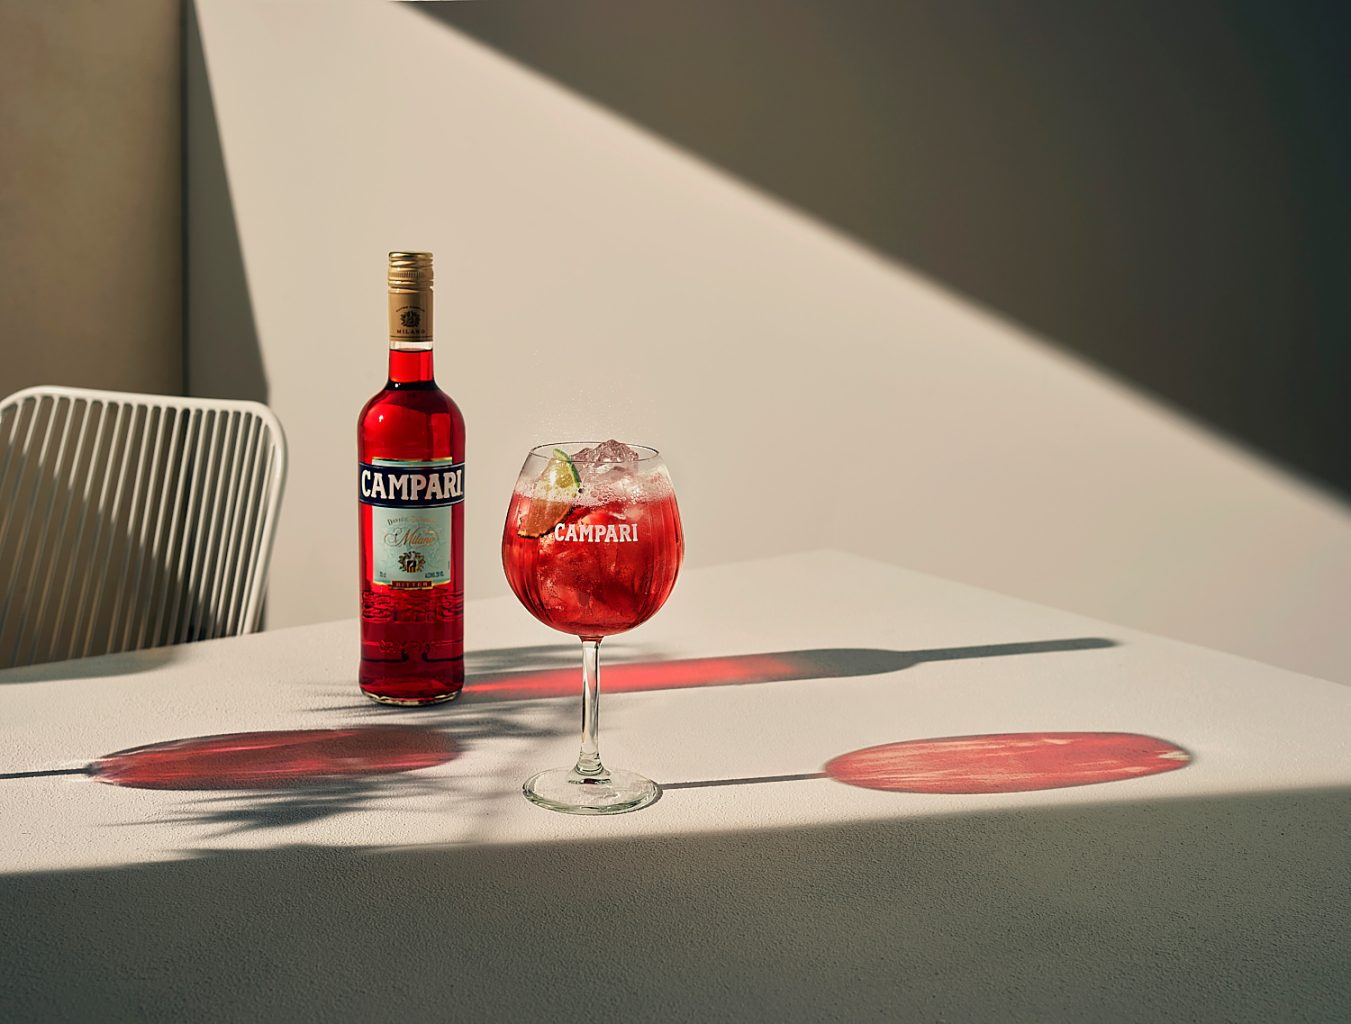 Campari Part2 Shot3 w3a 1 1351×1024 | Campari